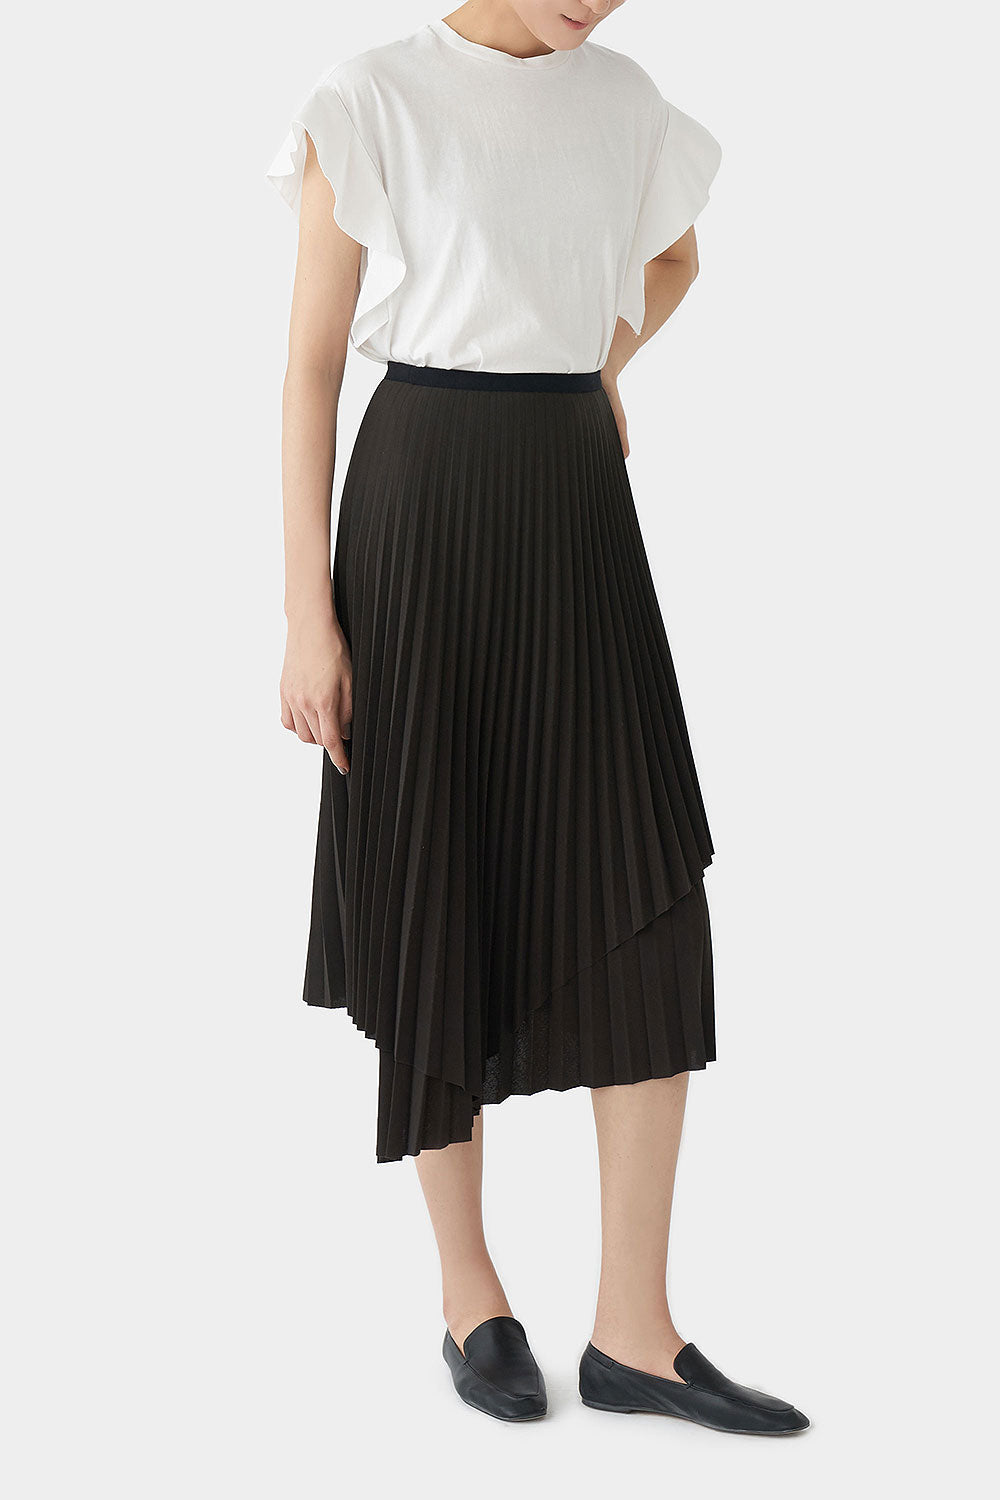 CHARCOAL LENA PLEATED SKIRT